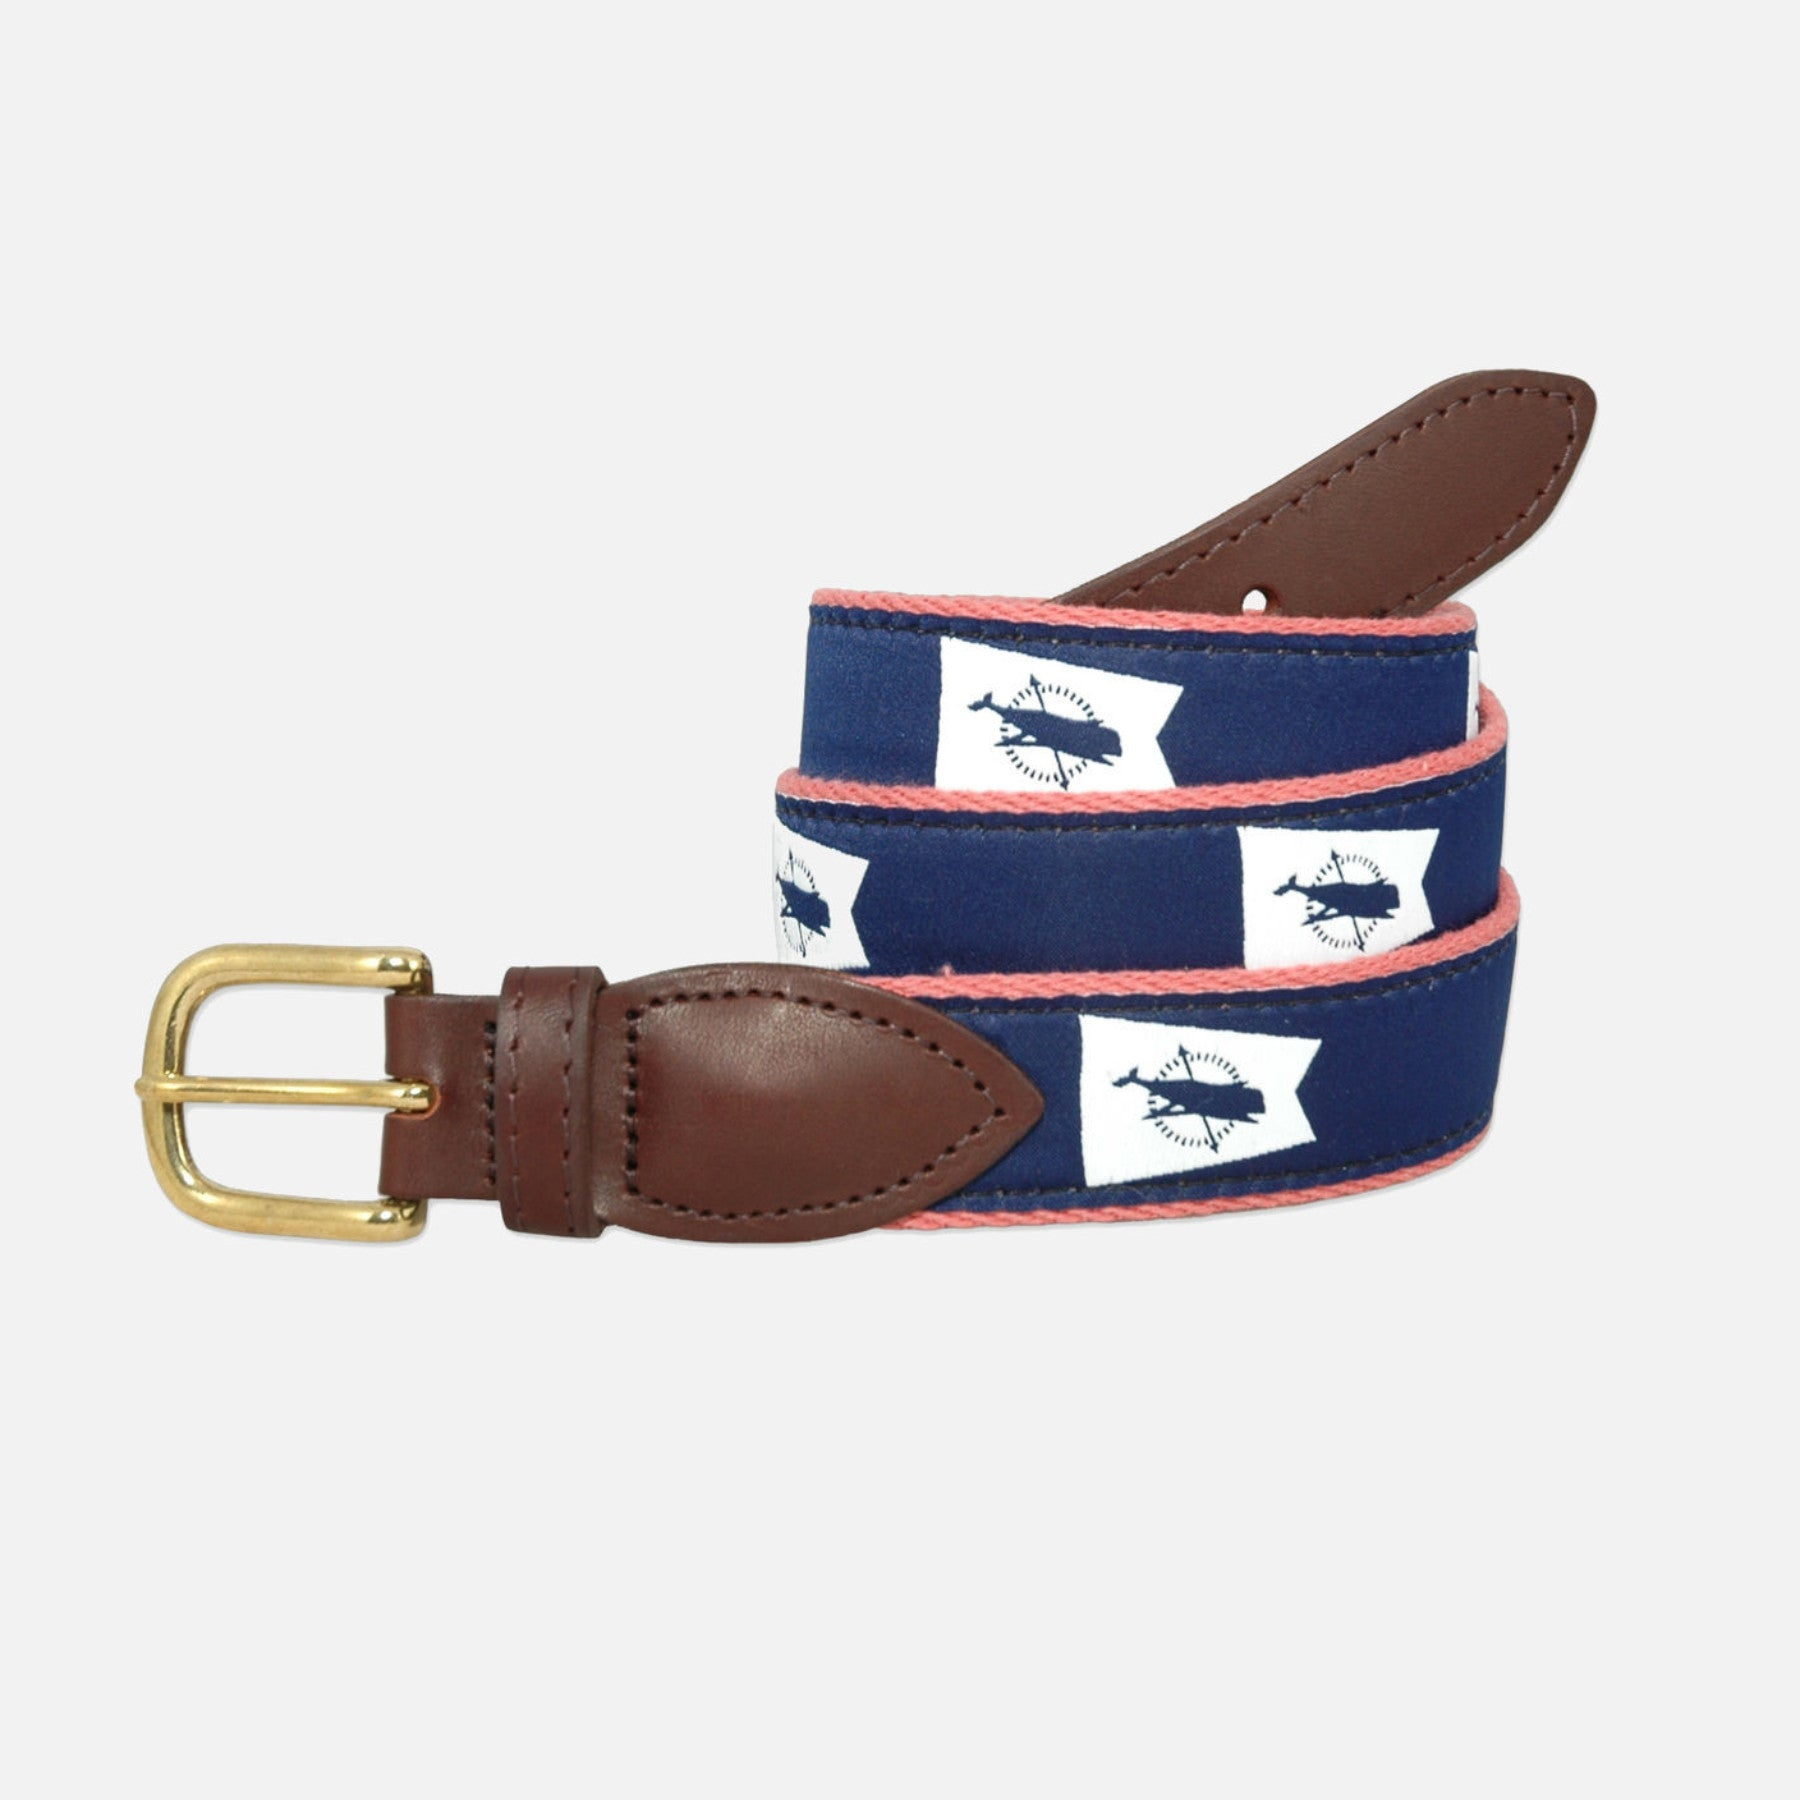 YRI Men's Ribbon Belt Nantucket Burgee - White on Red Webbing